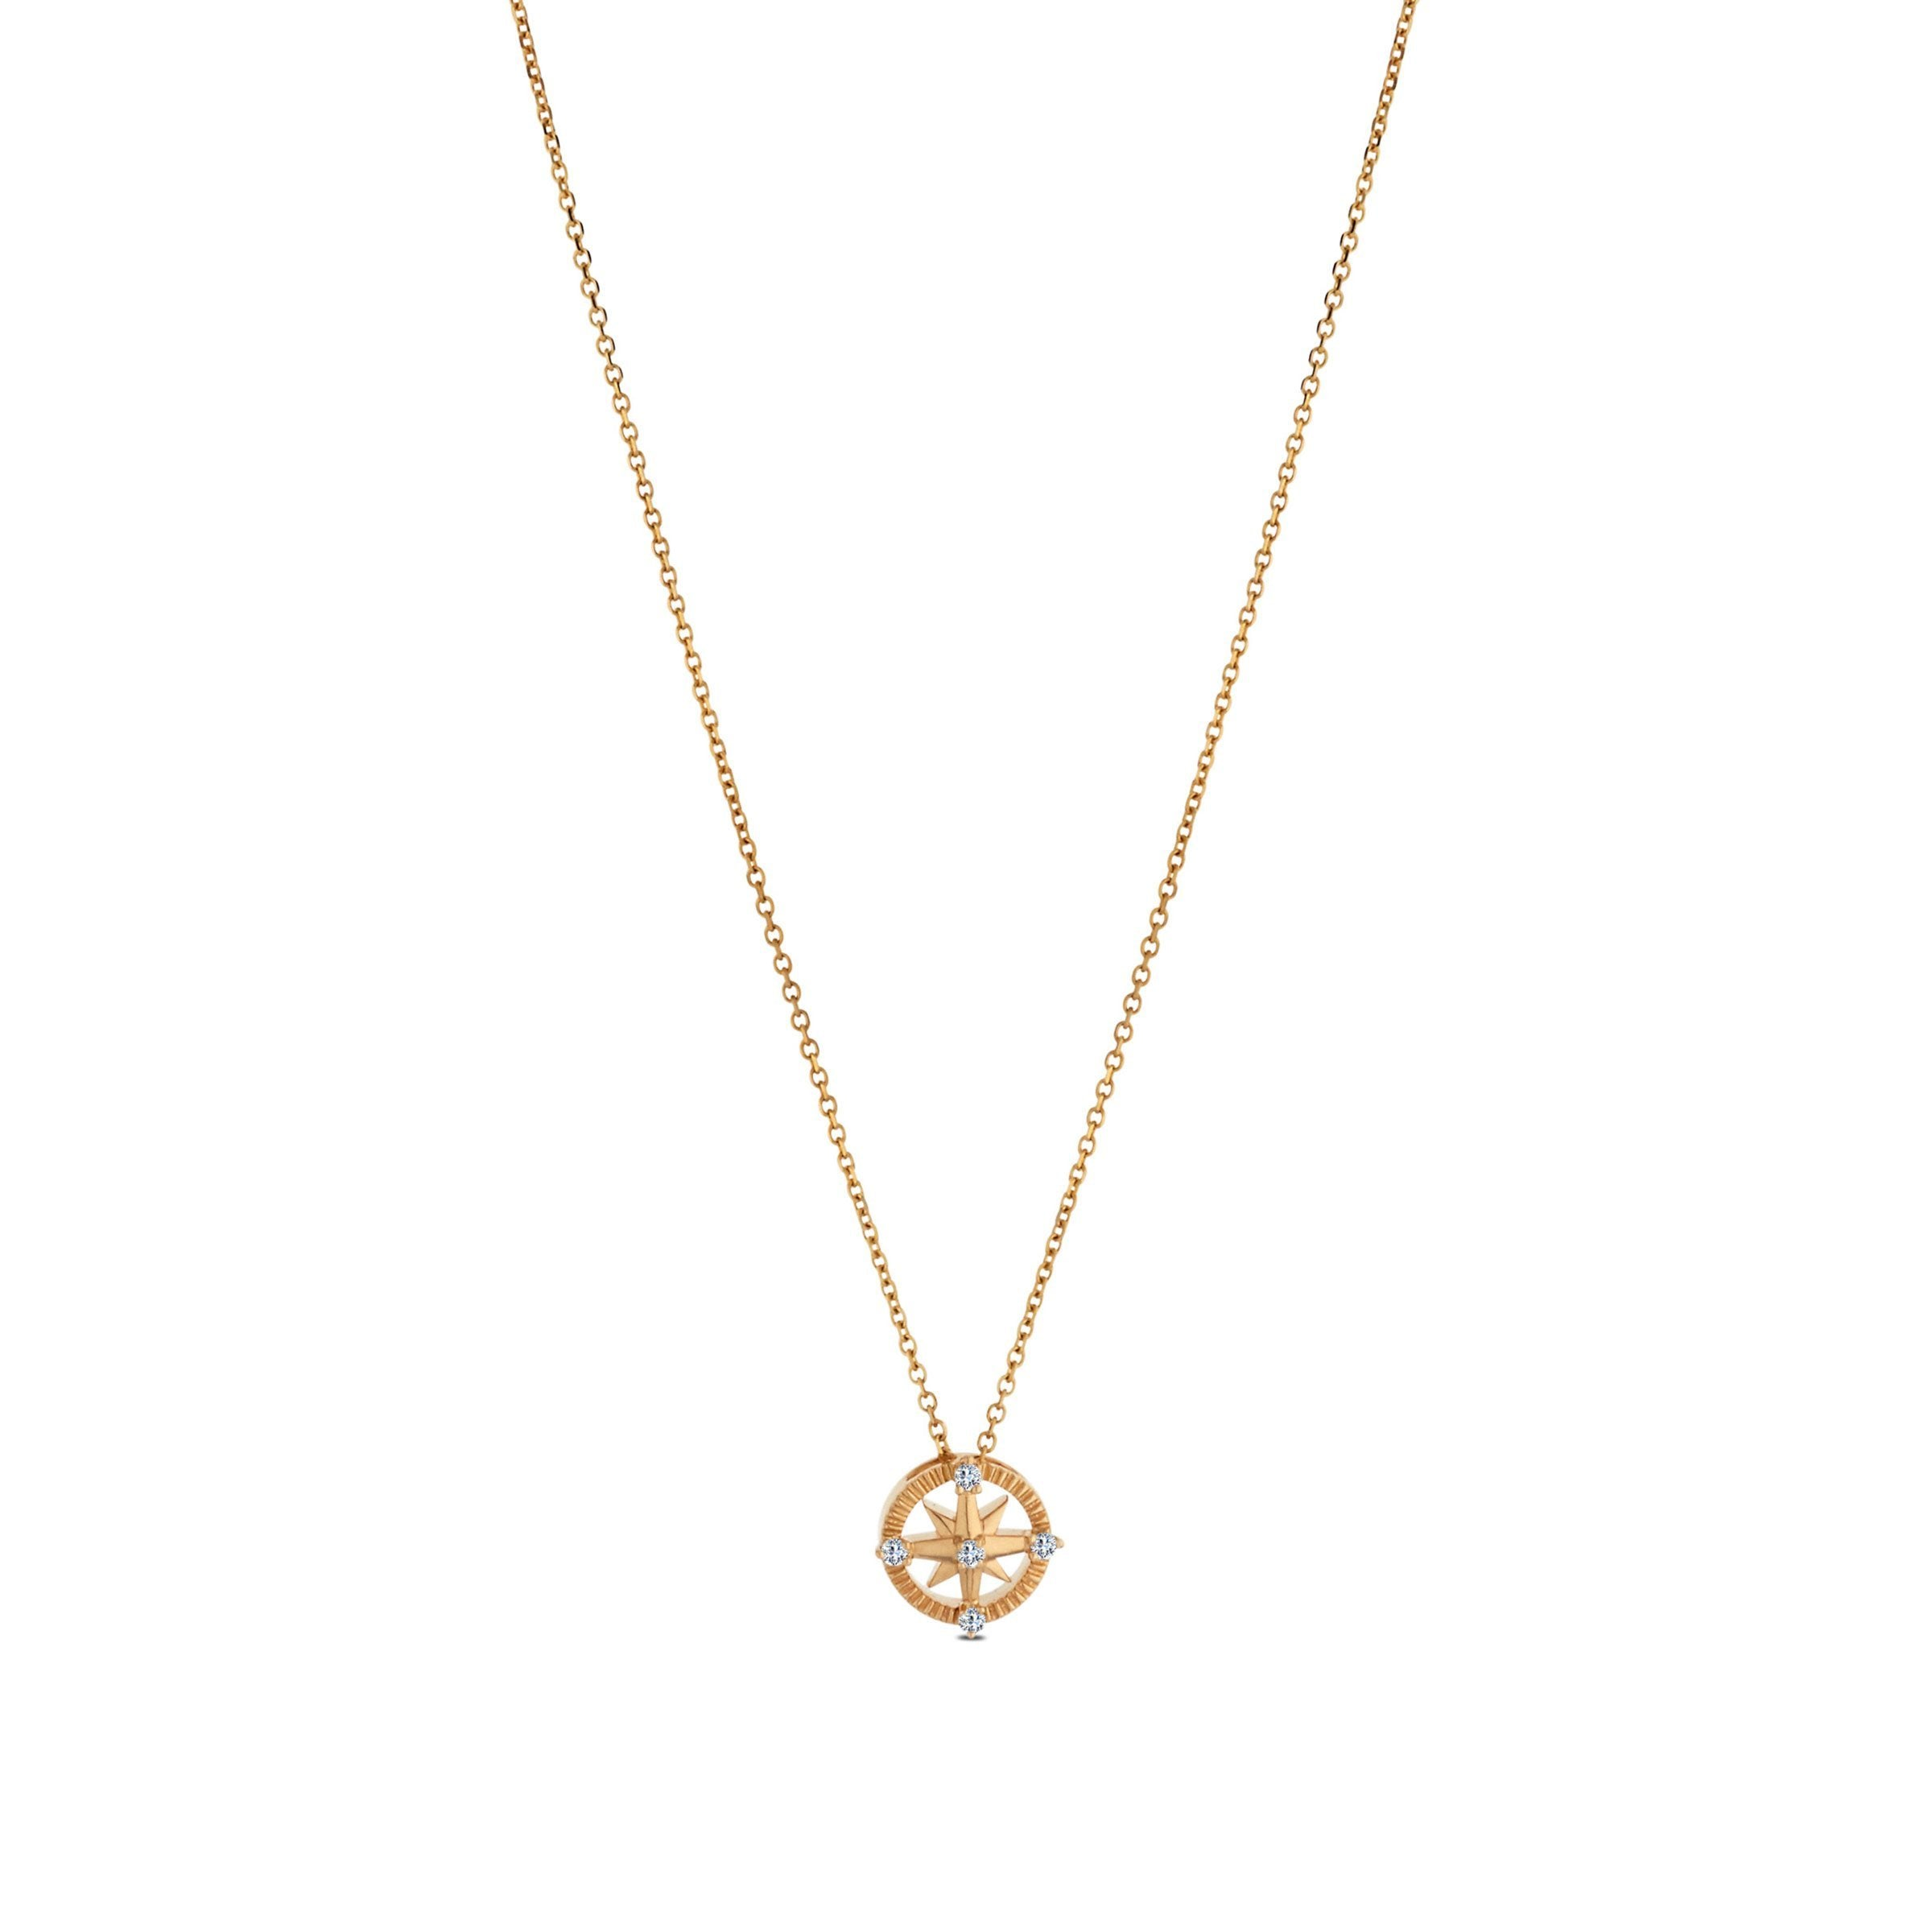 Diamond Compass Pendant Necklace in 14K Yellow Gold